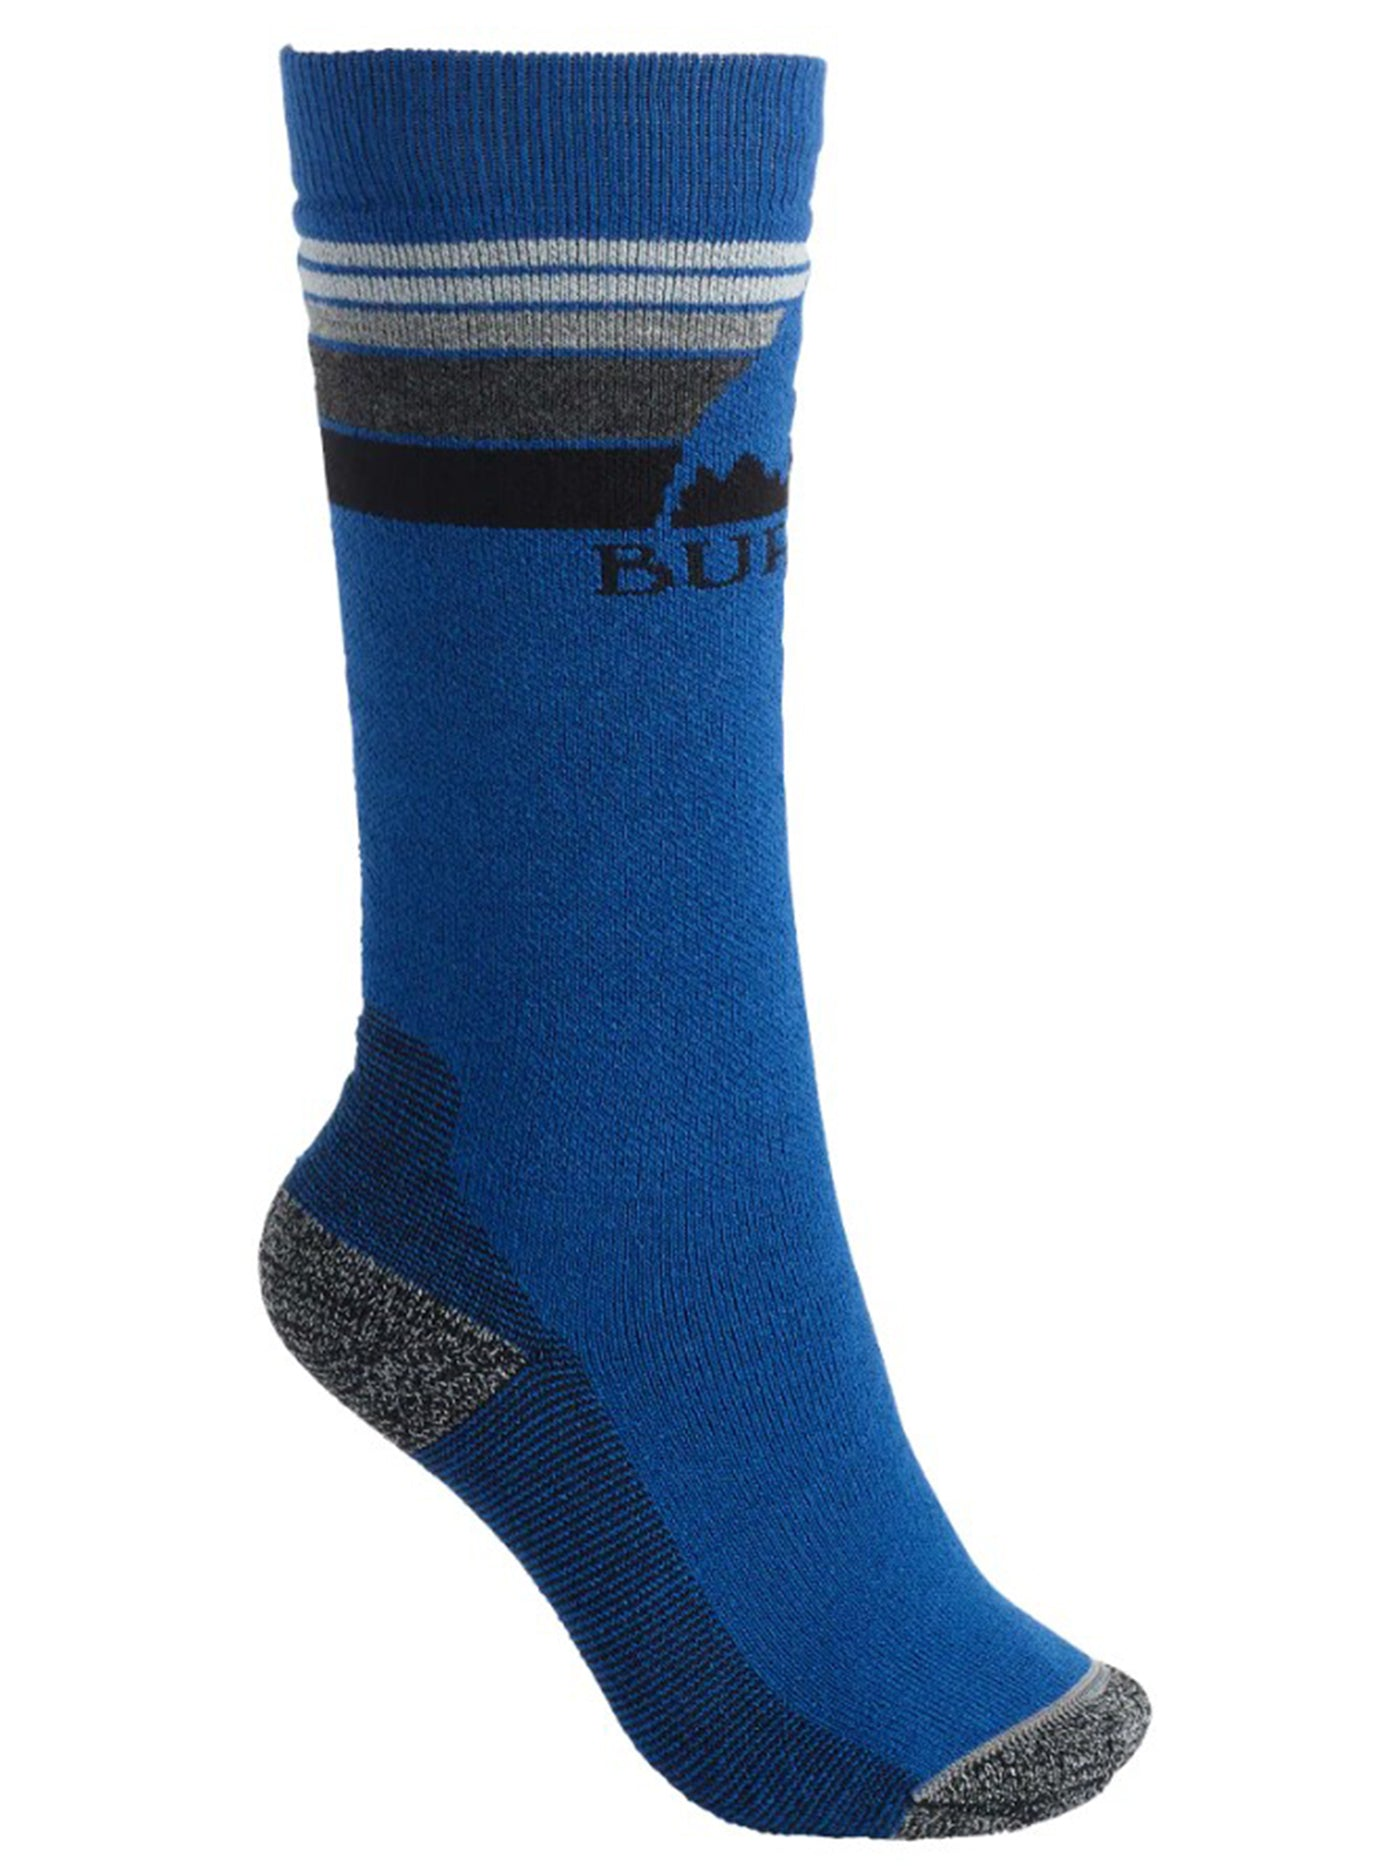 Snow Emblem Midweight Socks (Youth 7-14)